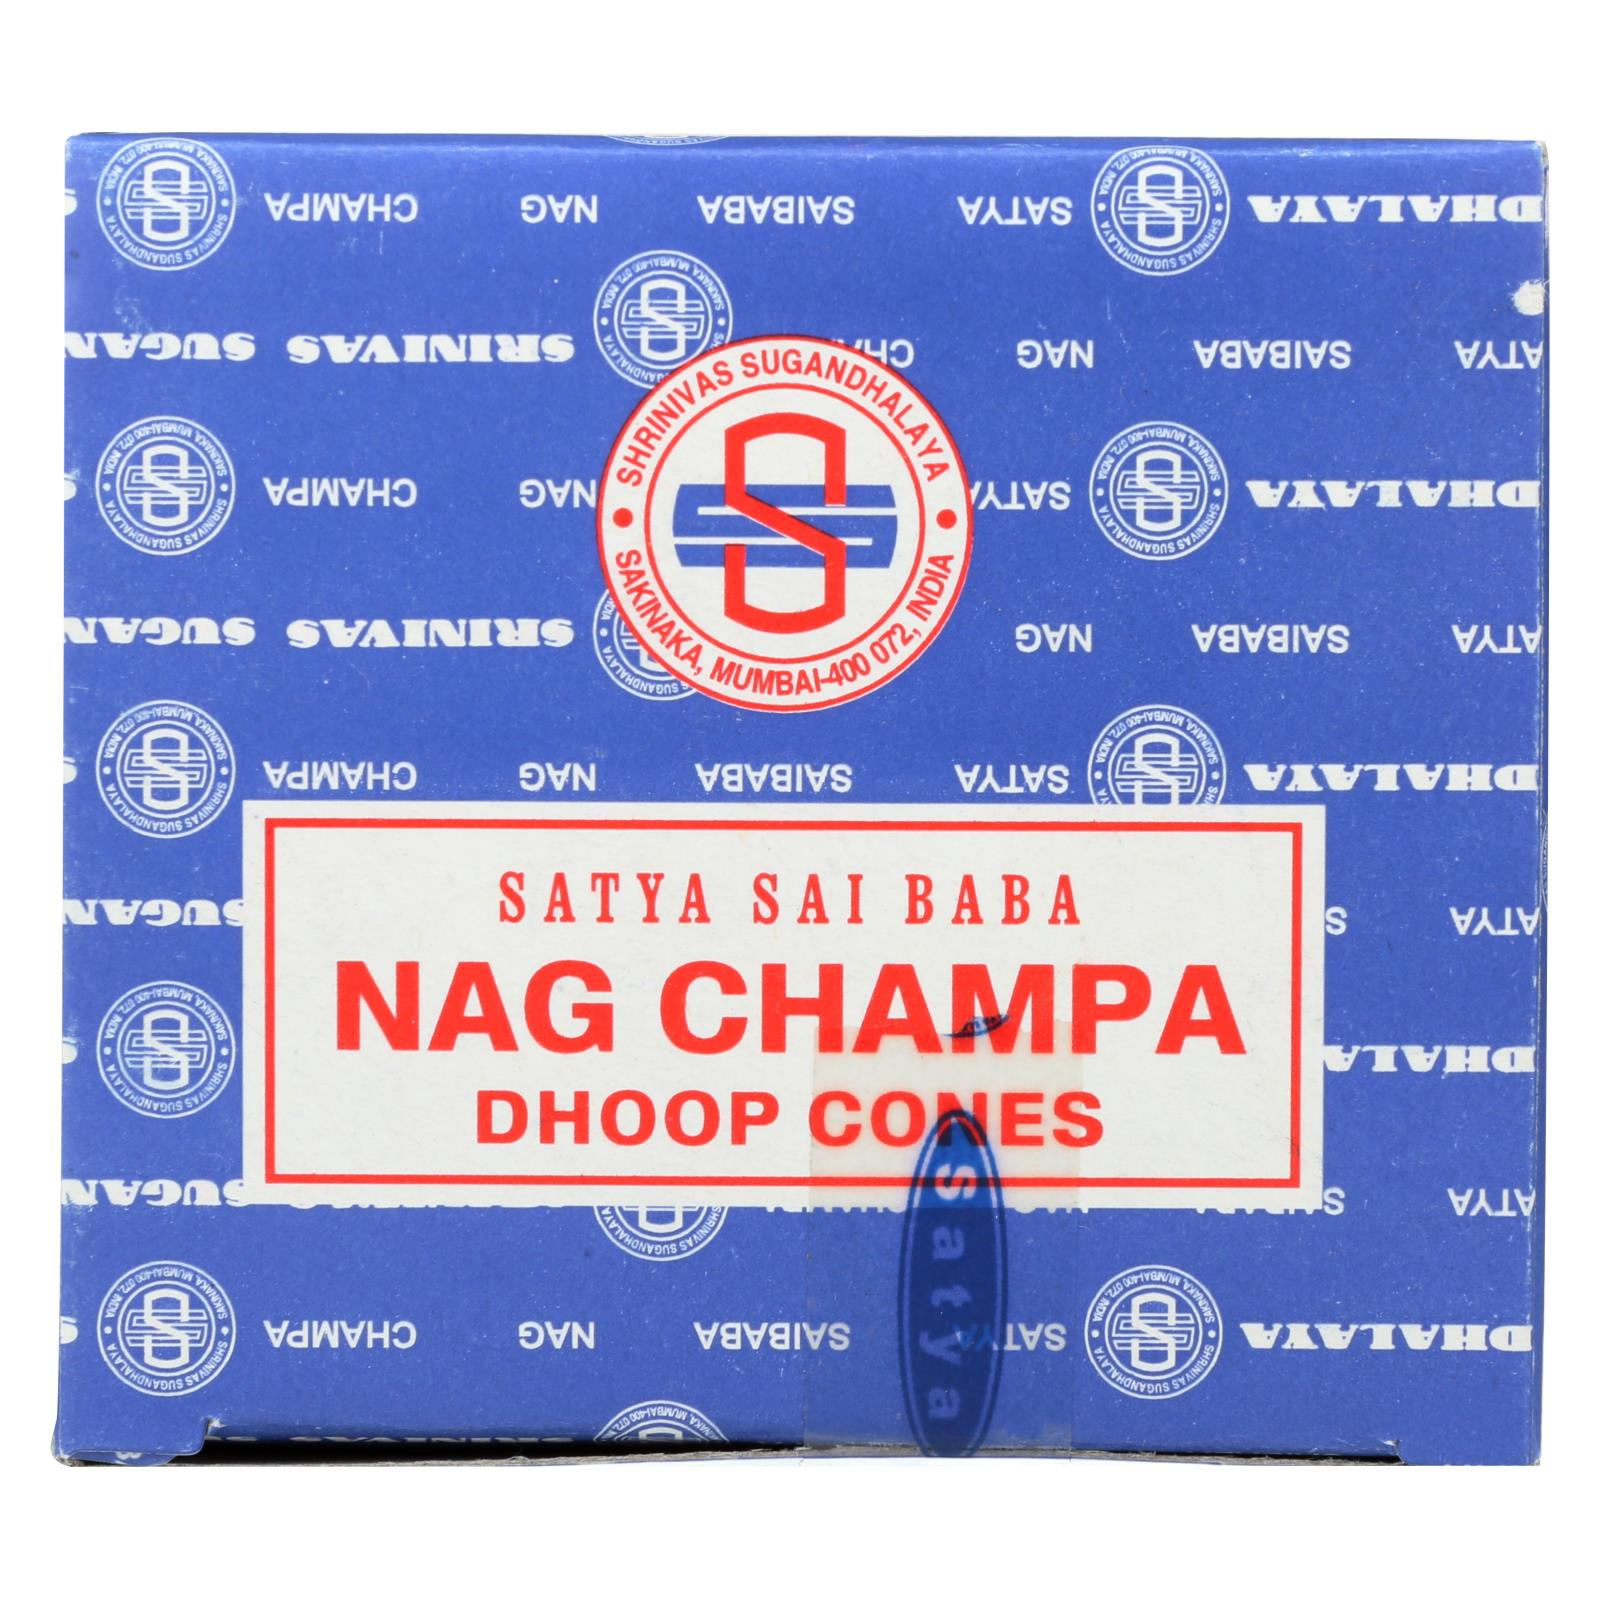 Buy Sai Baba Incense Dhoop Cones - 12 Cones - Incense from Veroeco.com